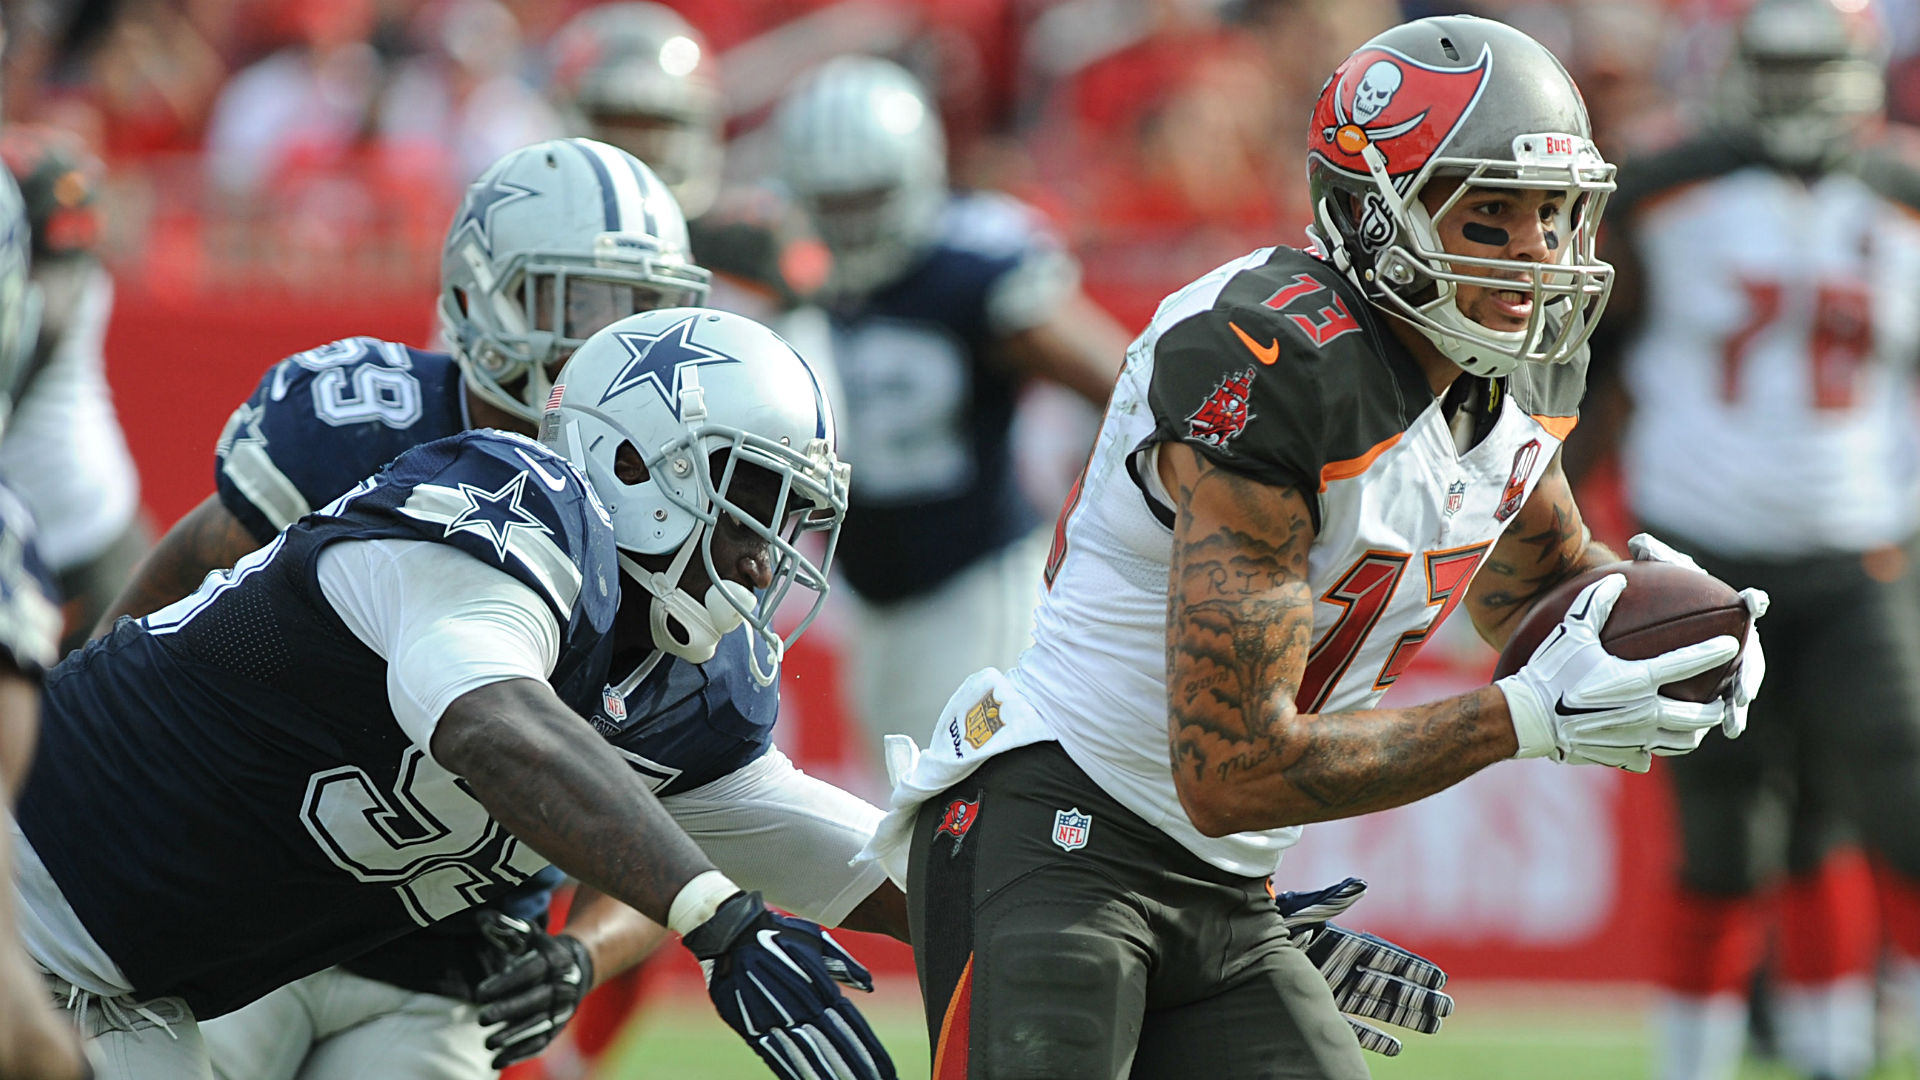 Bucs WR Mike Evans